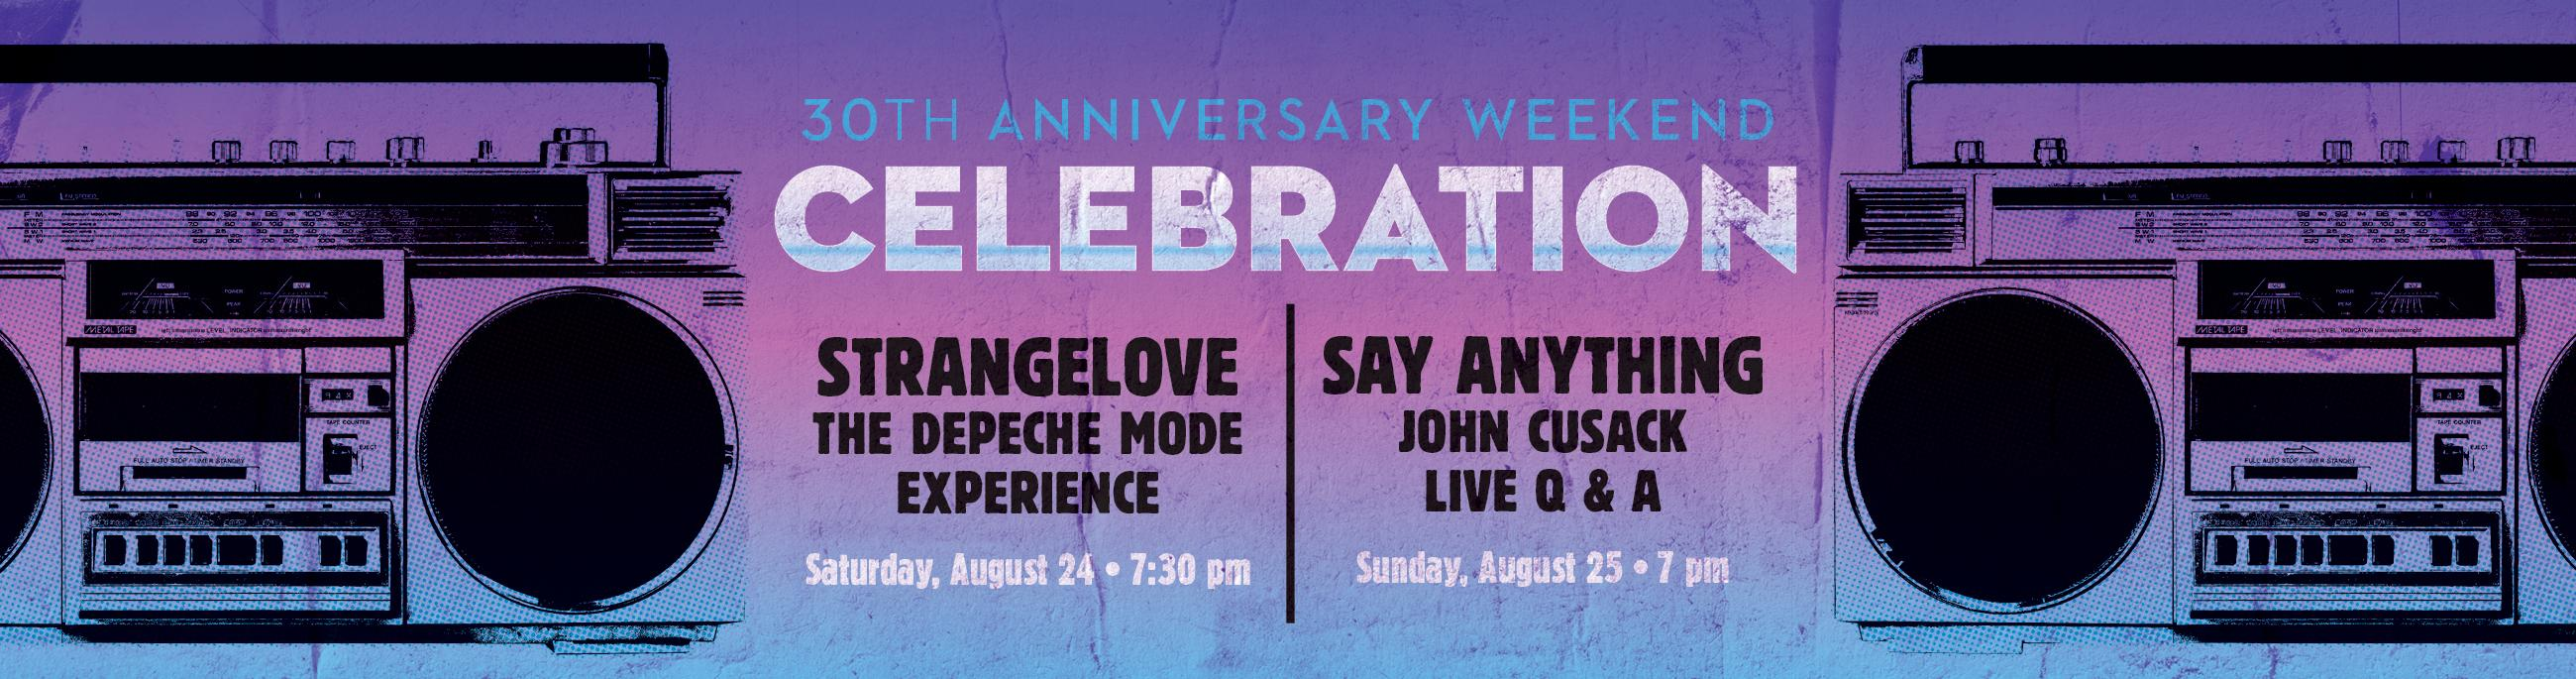 Anniversary Weekend with Strangelove and John Cusack